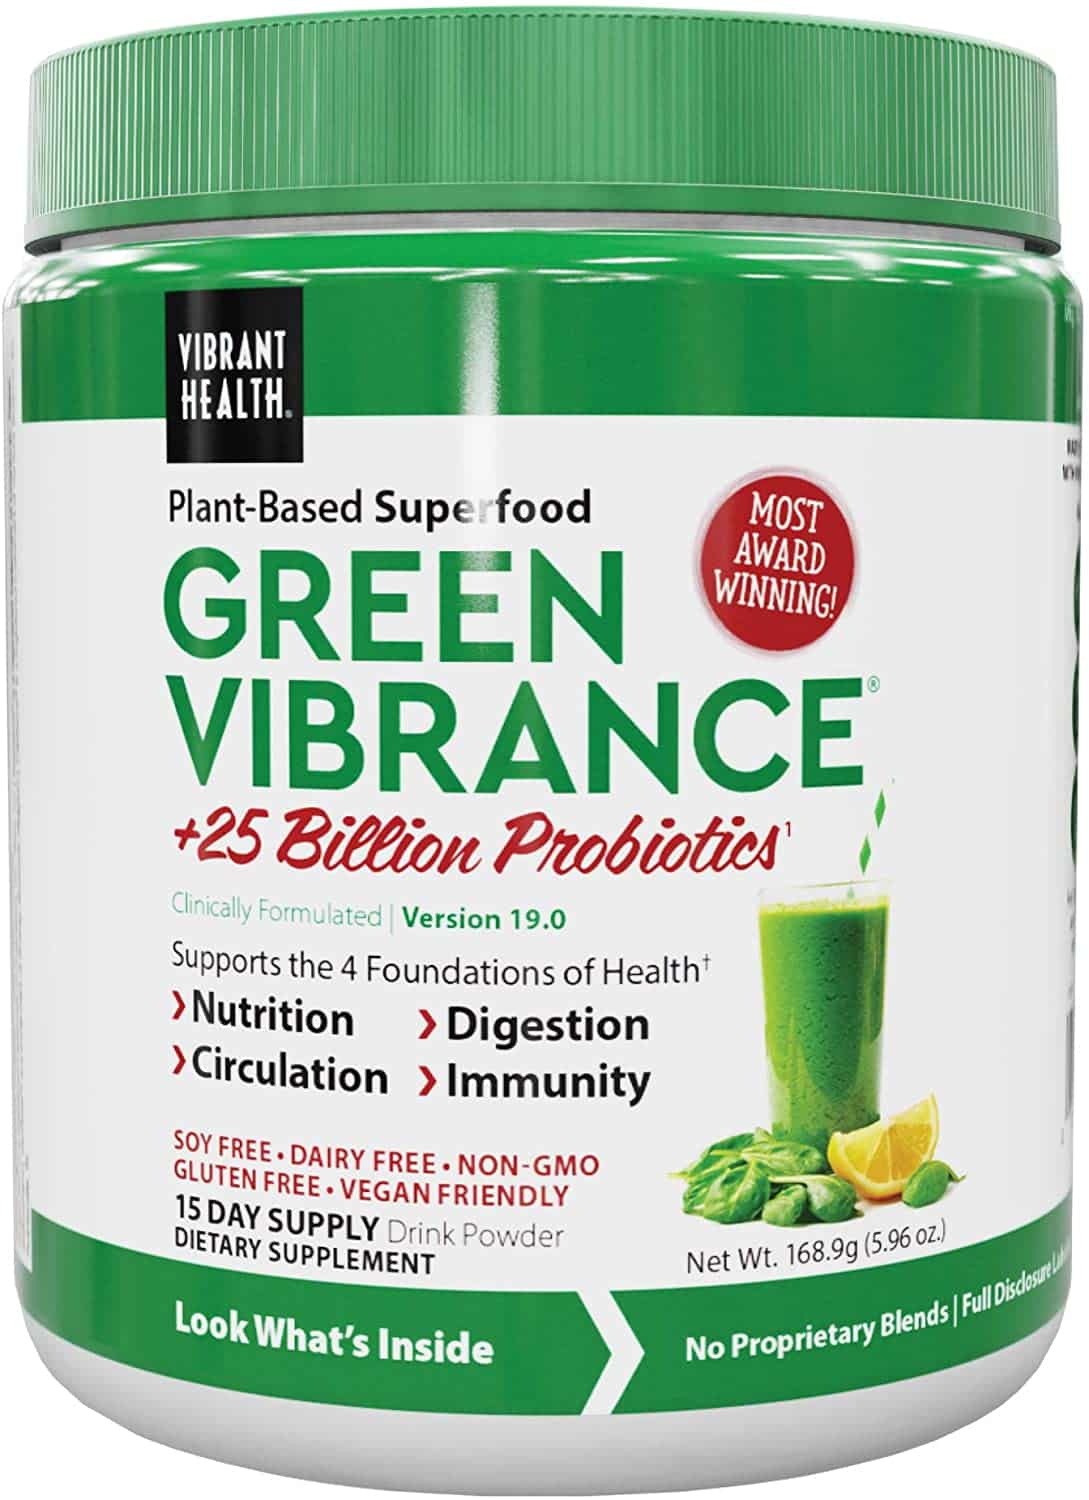 Vibrant Health Probiotic Supplements